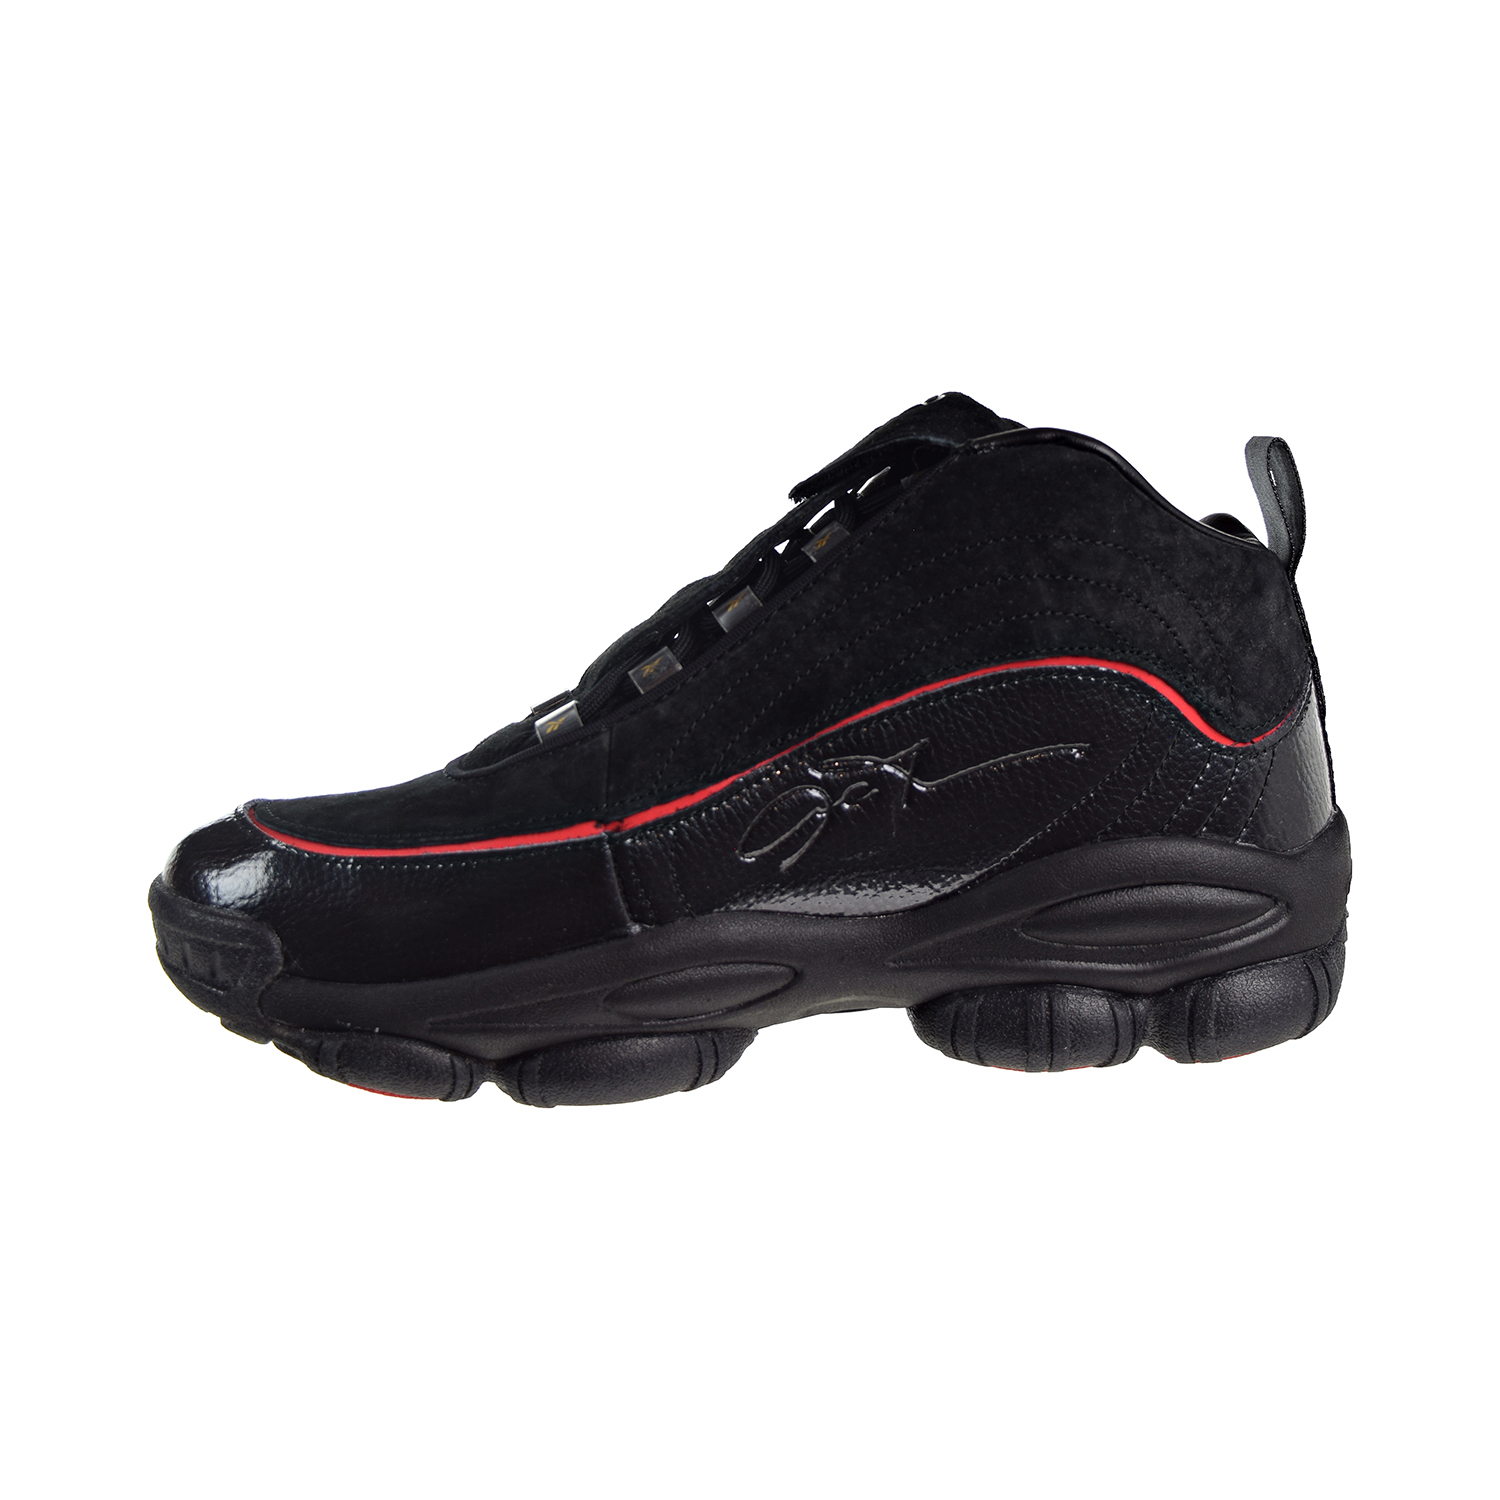 Reebok Iverson Legacy Men/'s Shoes Black-White-Red-Brass CN8404